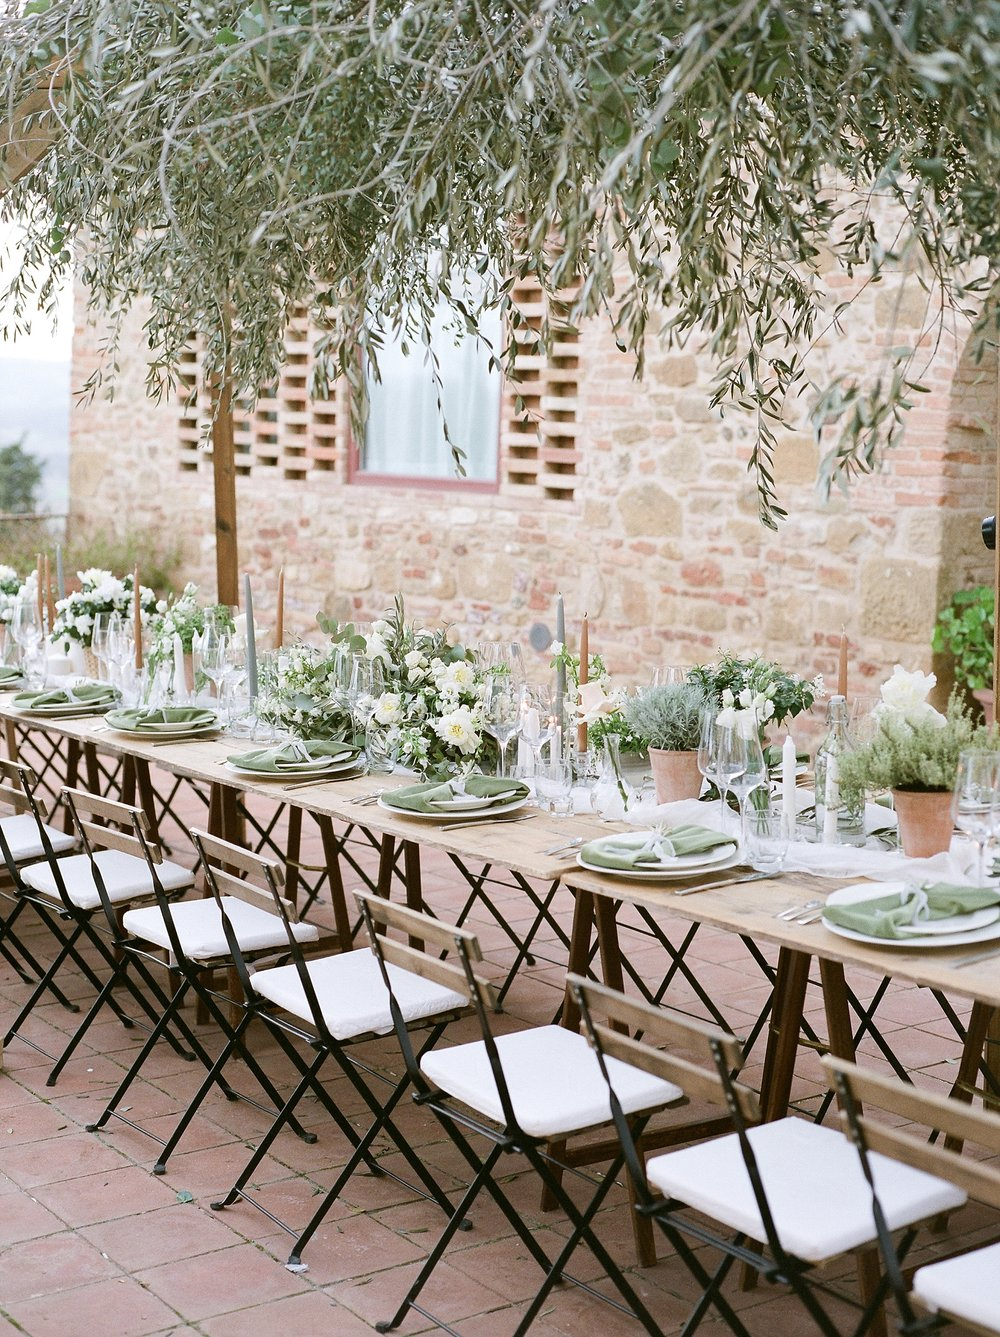 All White Destination Wedding in the Hills of Tuscany Italy at Estate Borgo Petrognano by Kelsi Kliethermes Photography_0067.jpg